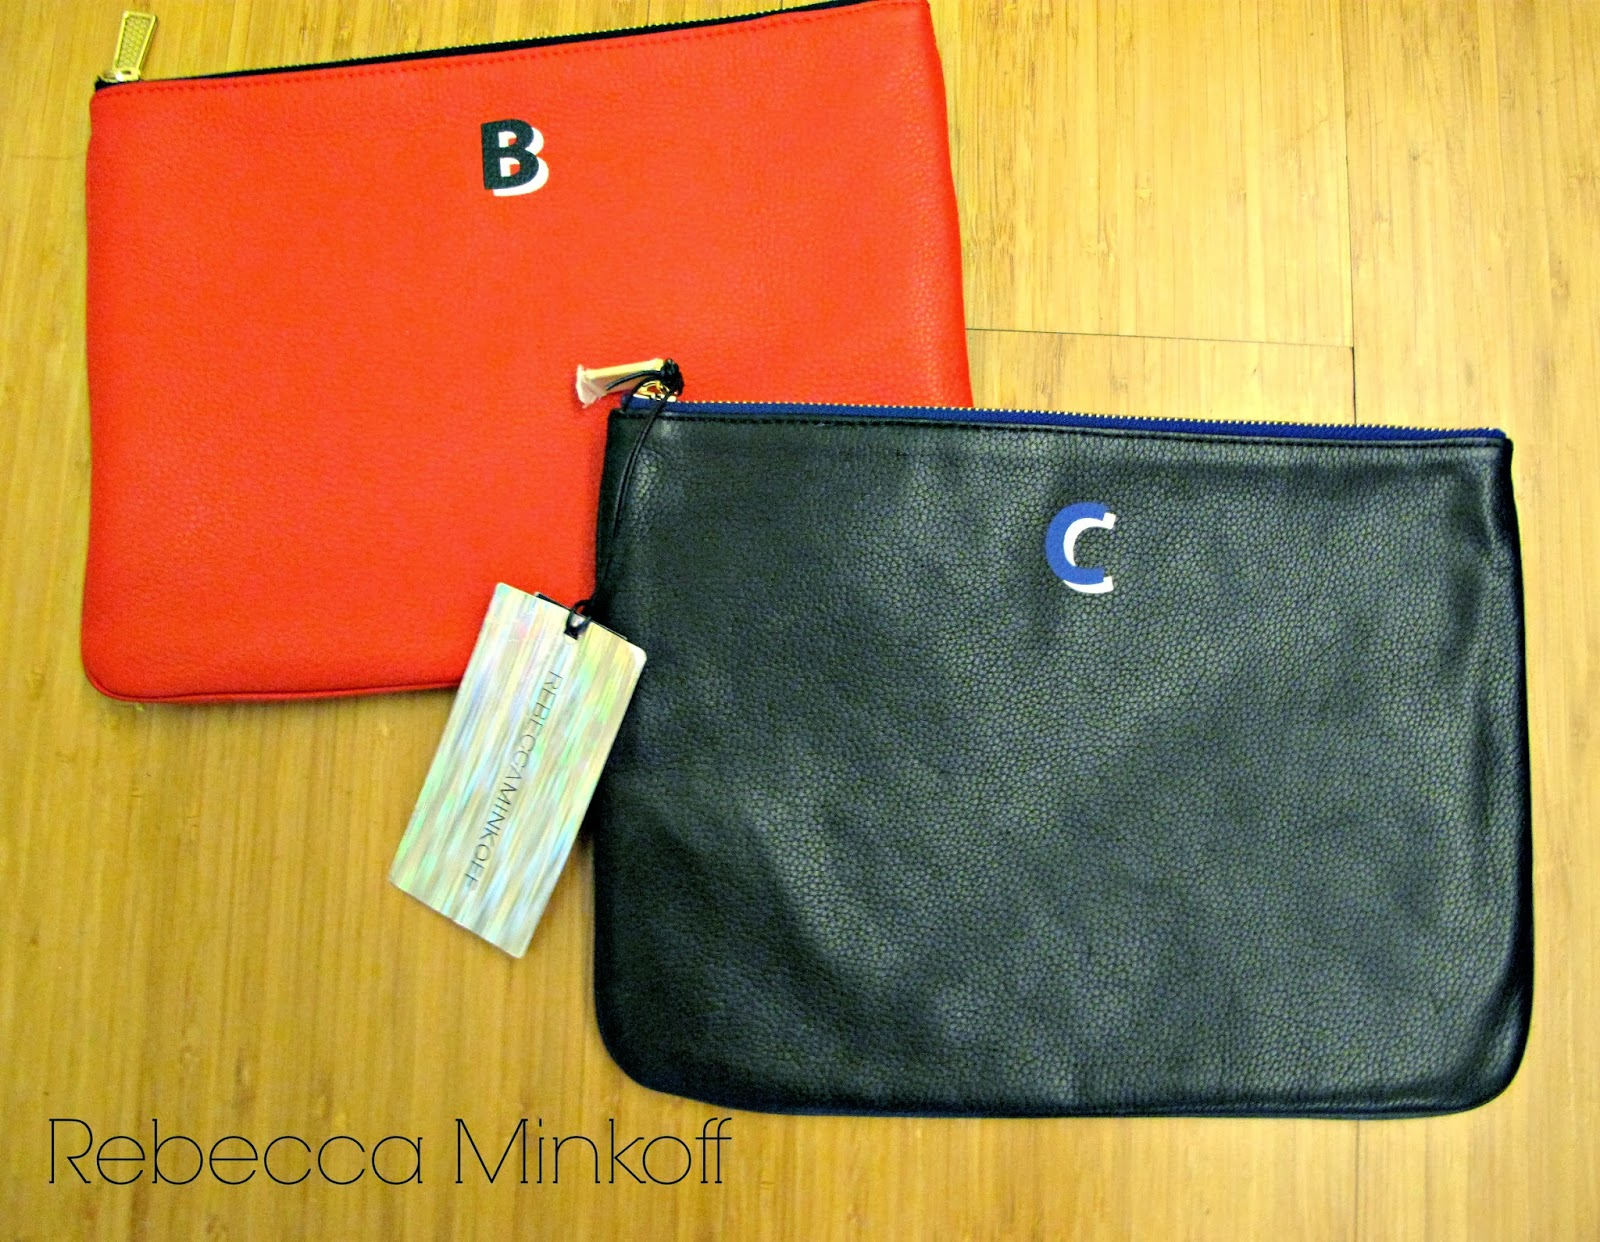 rebecca minkoff, monogram, jody pouch, the rack, nordstrom, red, b monogram, black, c monogram, fashion bargain